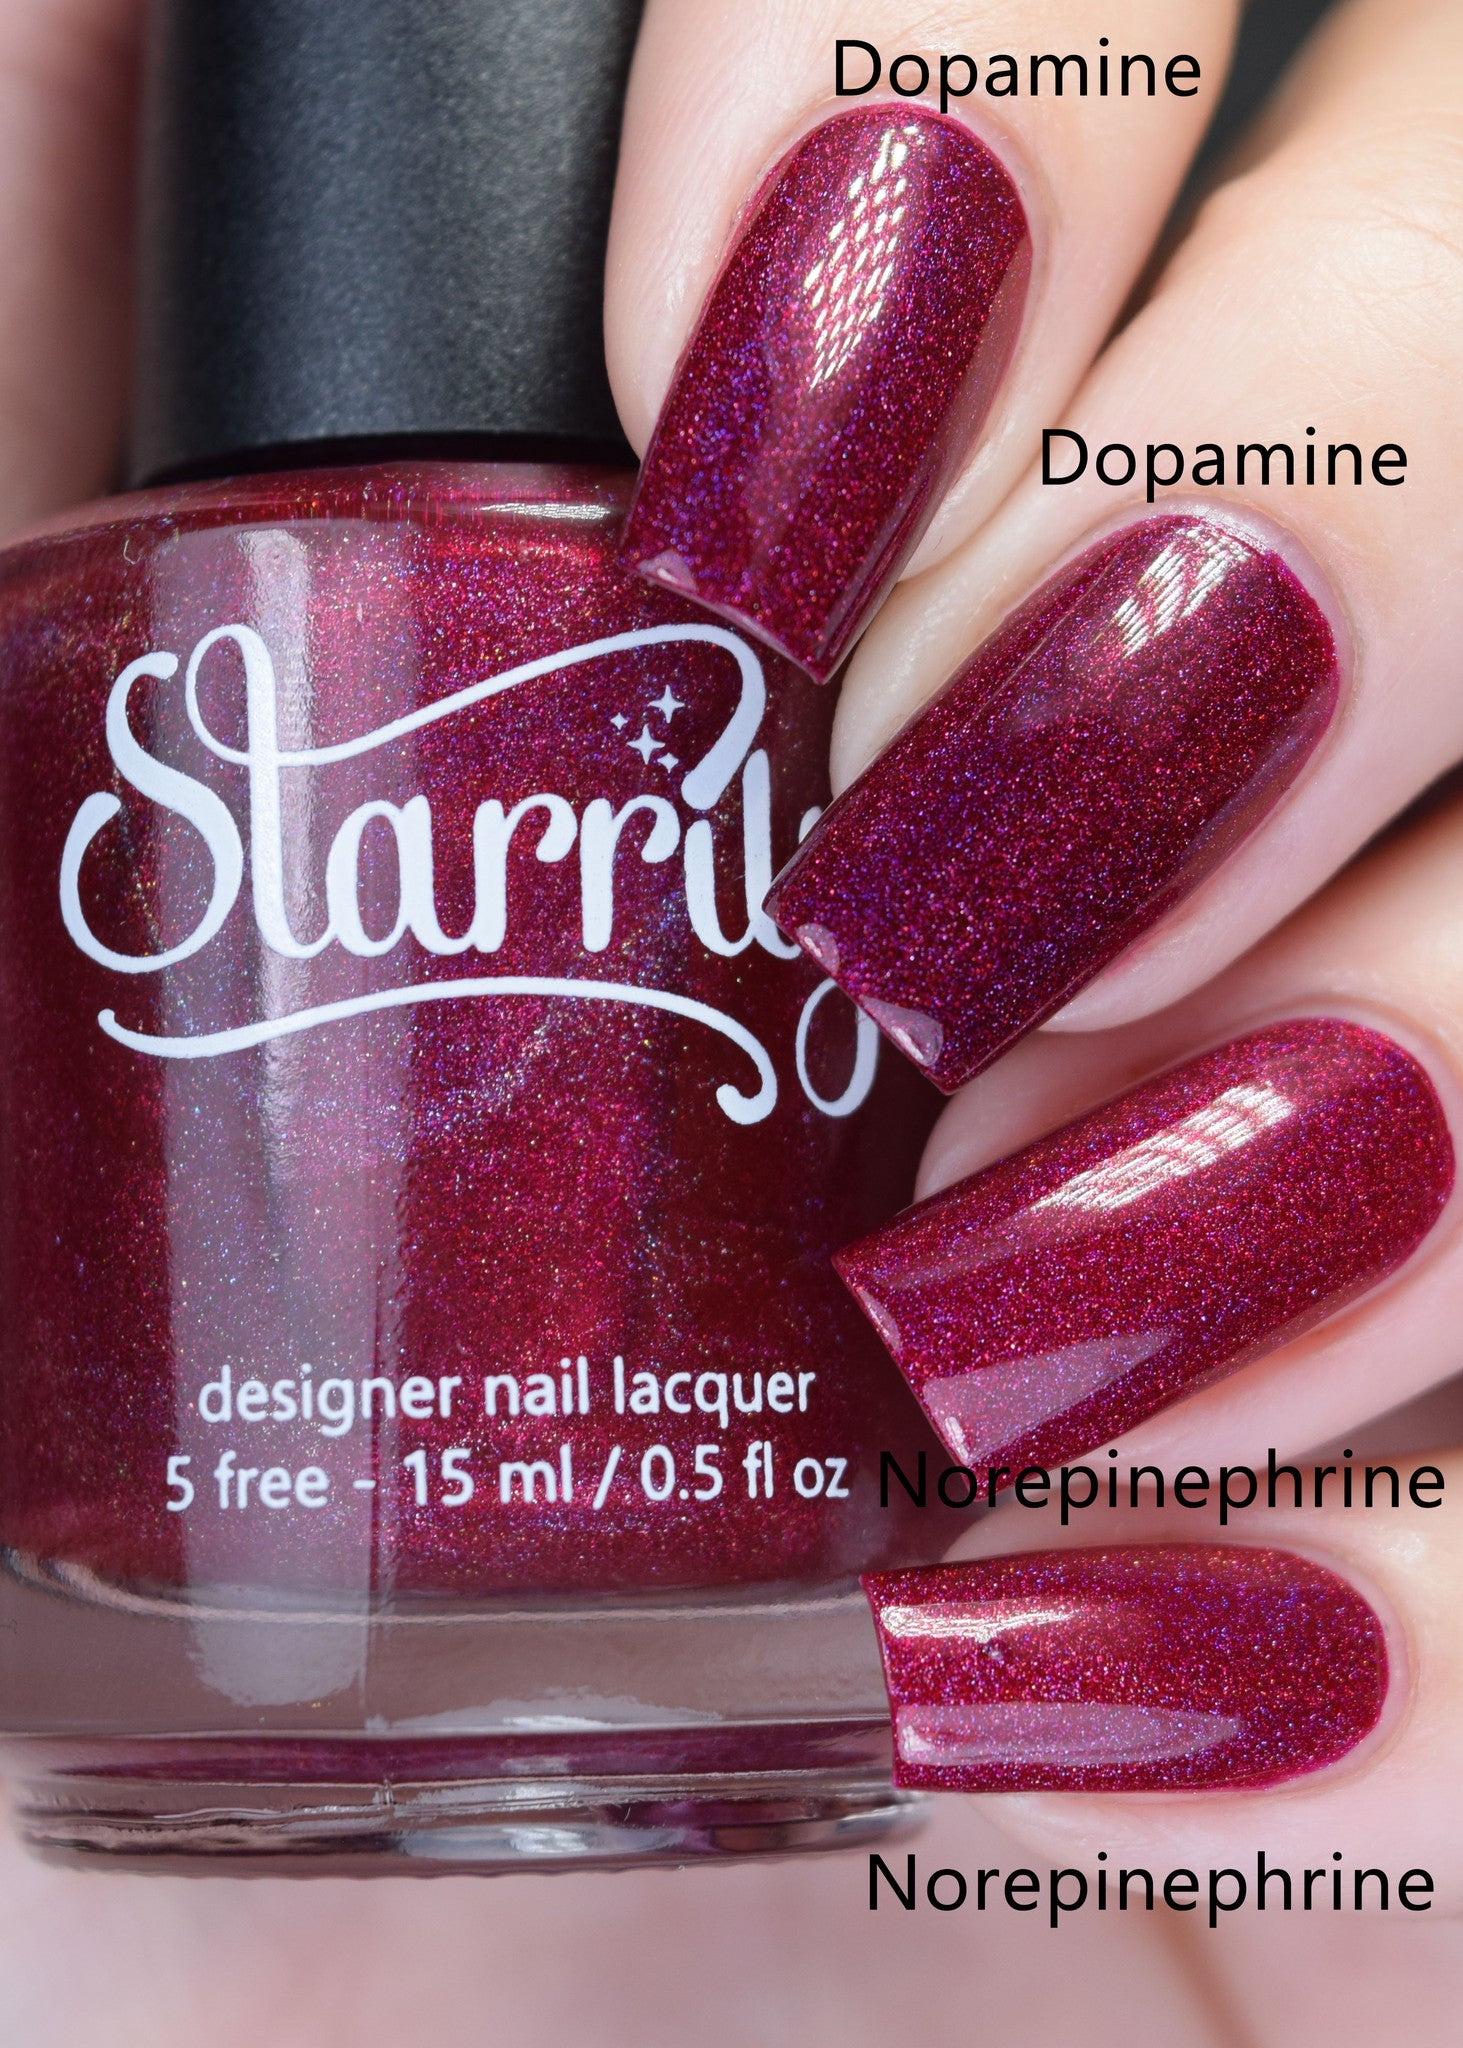 Norepinephrine is a beautiful ruby red jelly linear holographic nail polish